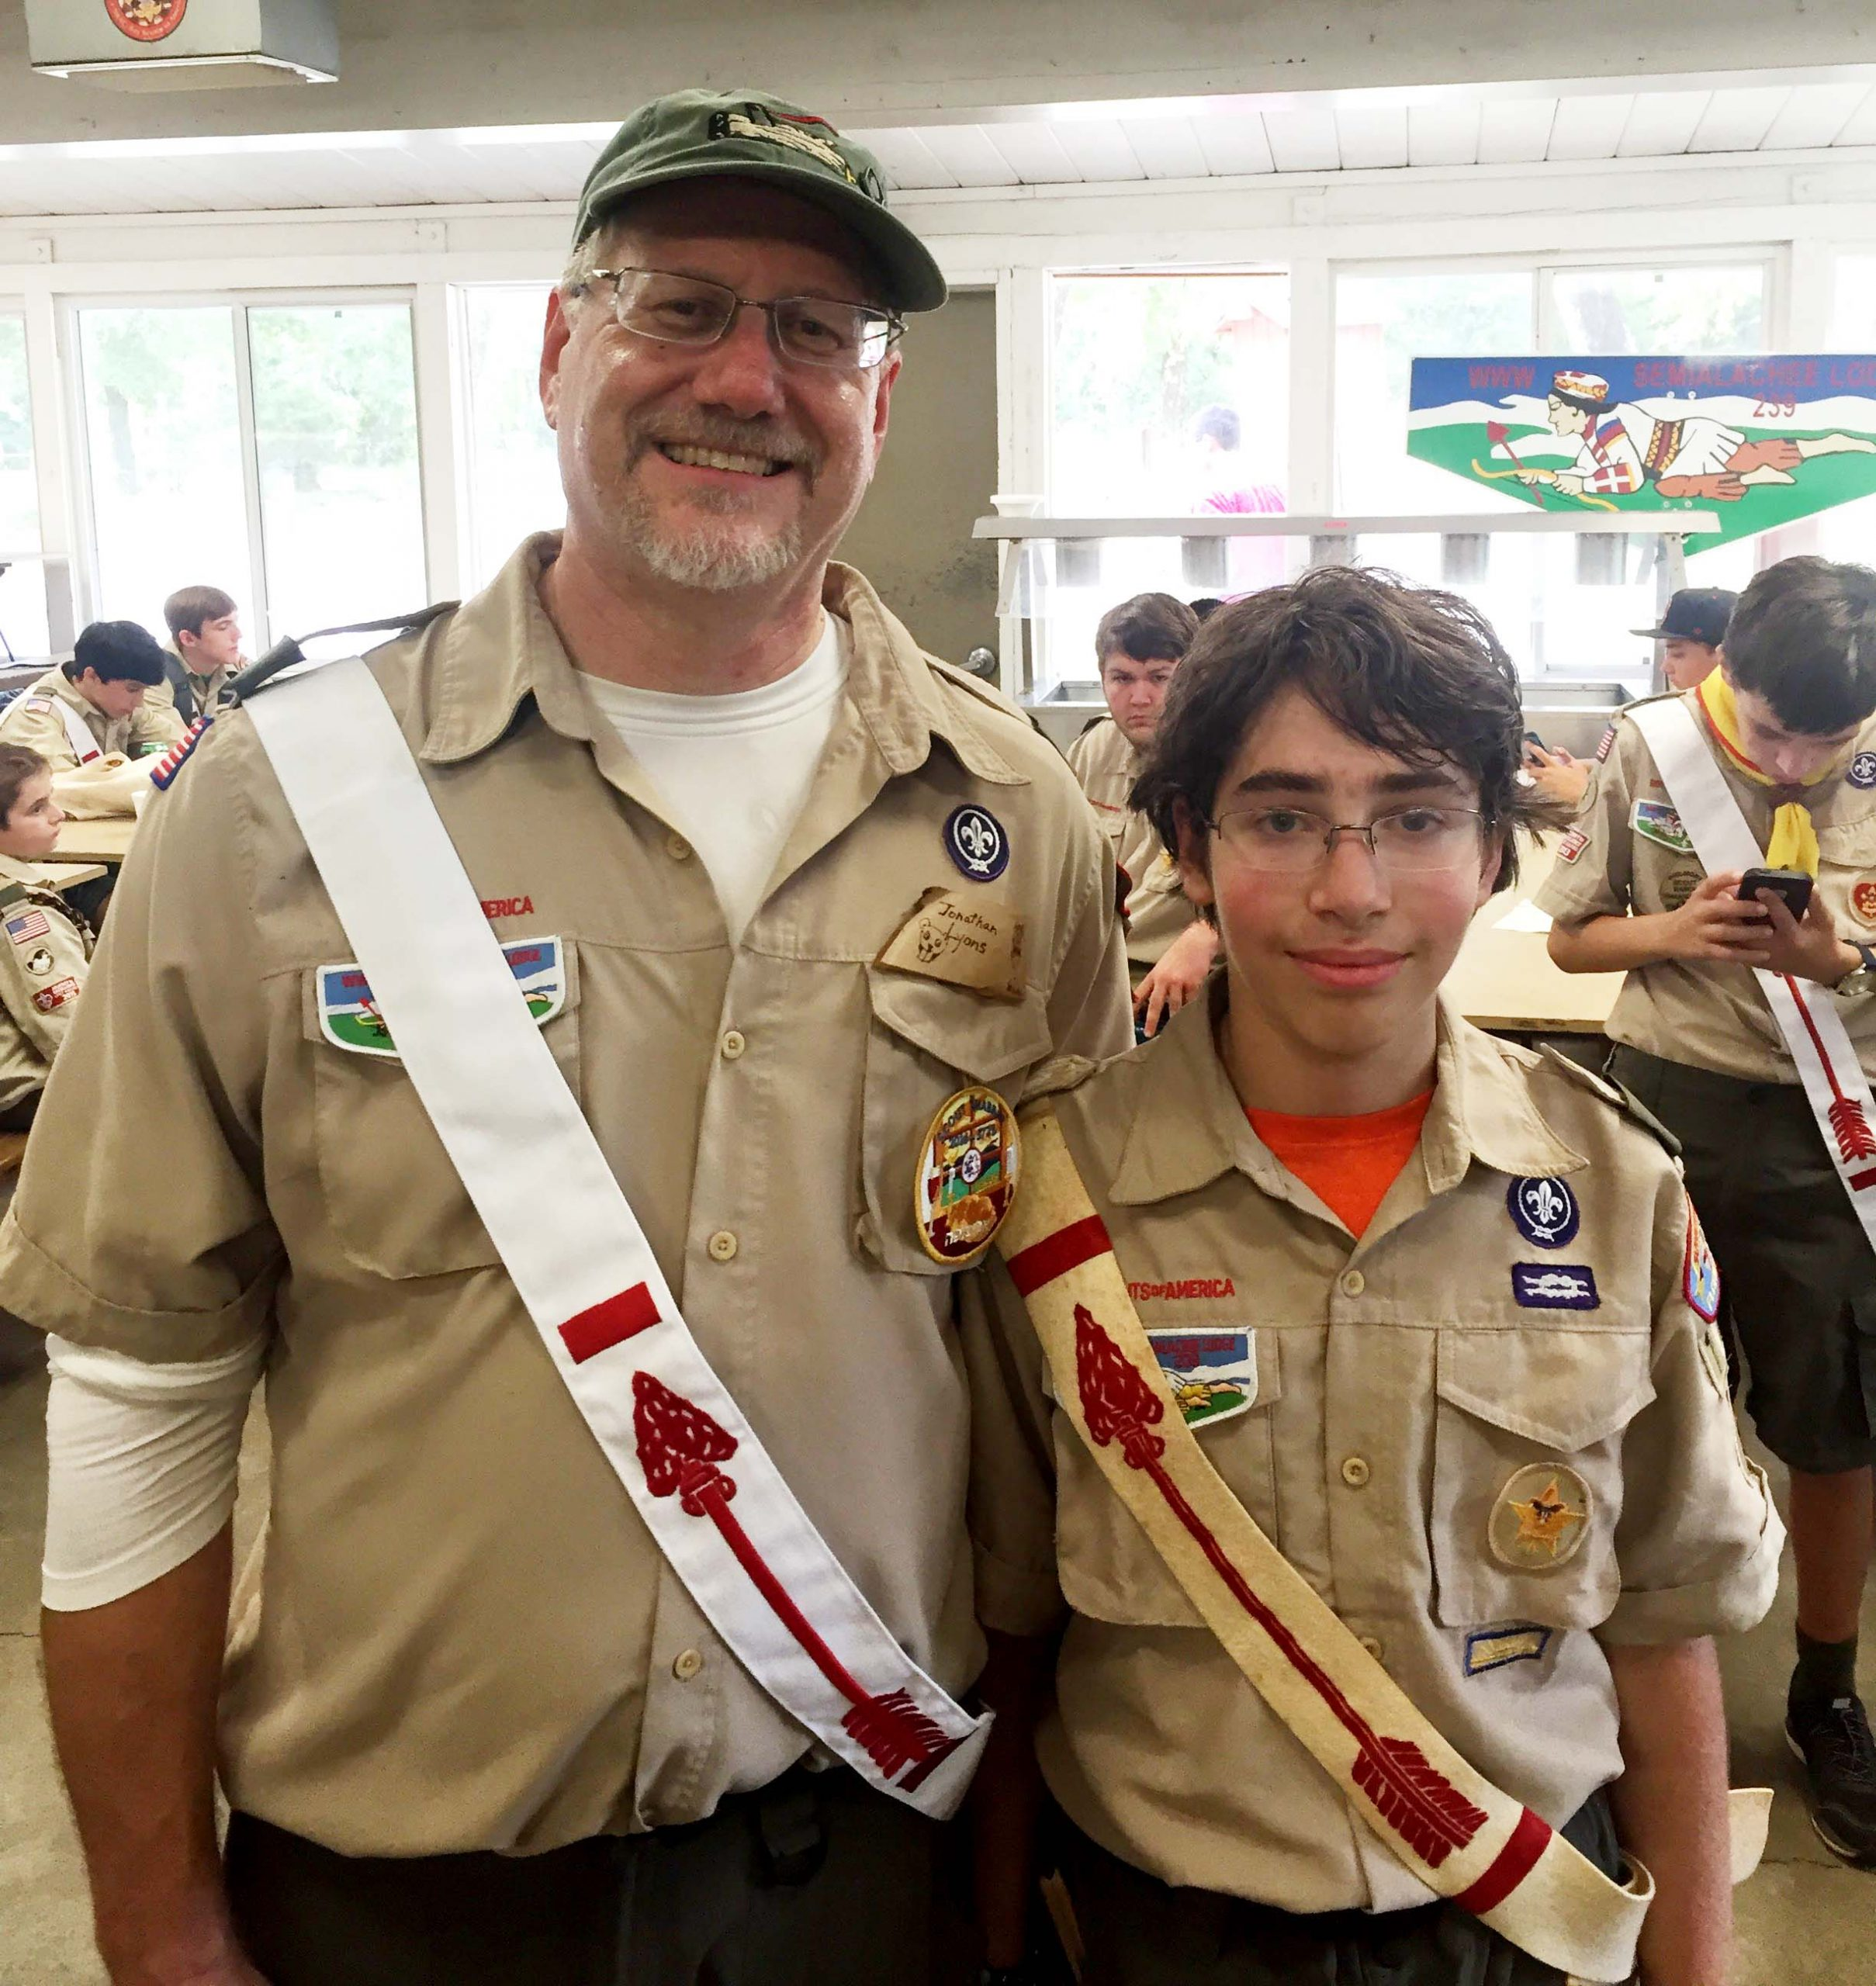 Jonathan and Avner in Scout uniforms with OA Brotherhood sashes